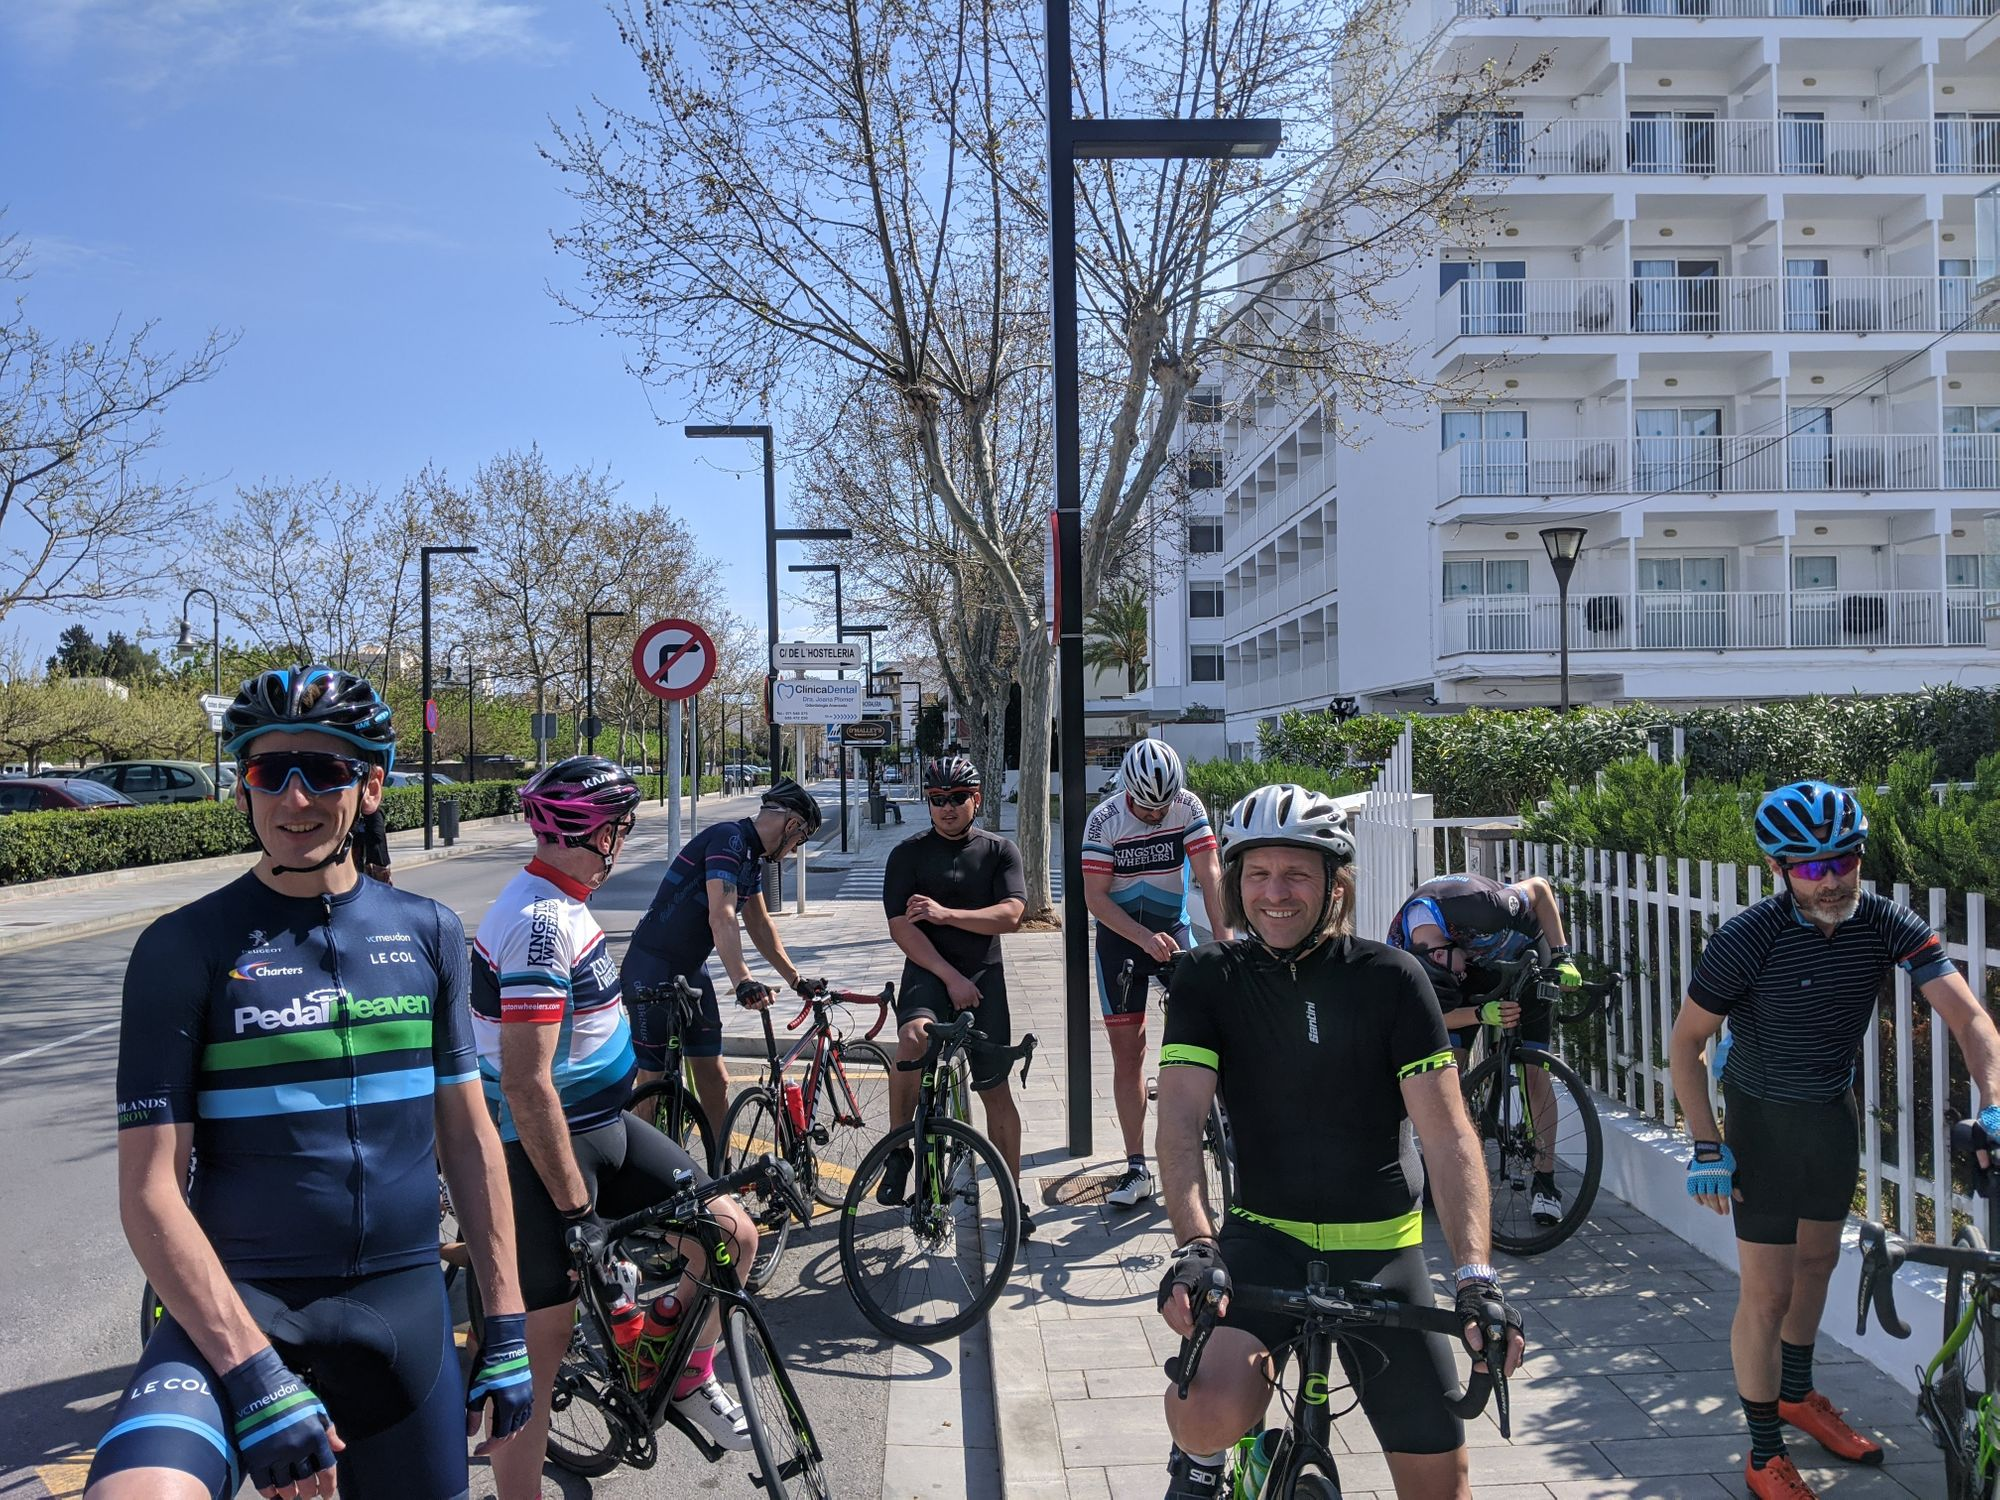 The Mallorca cycling crew gathering before the first day's ride